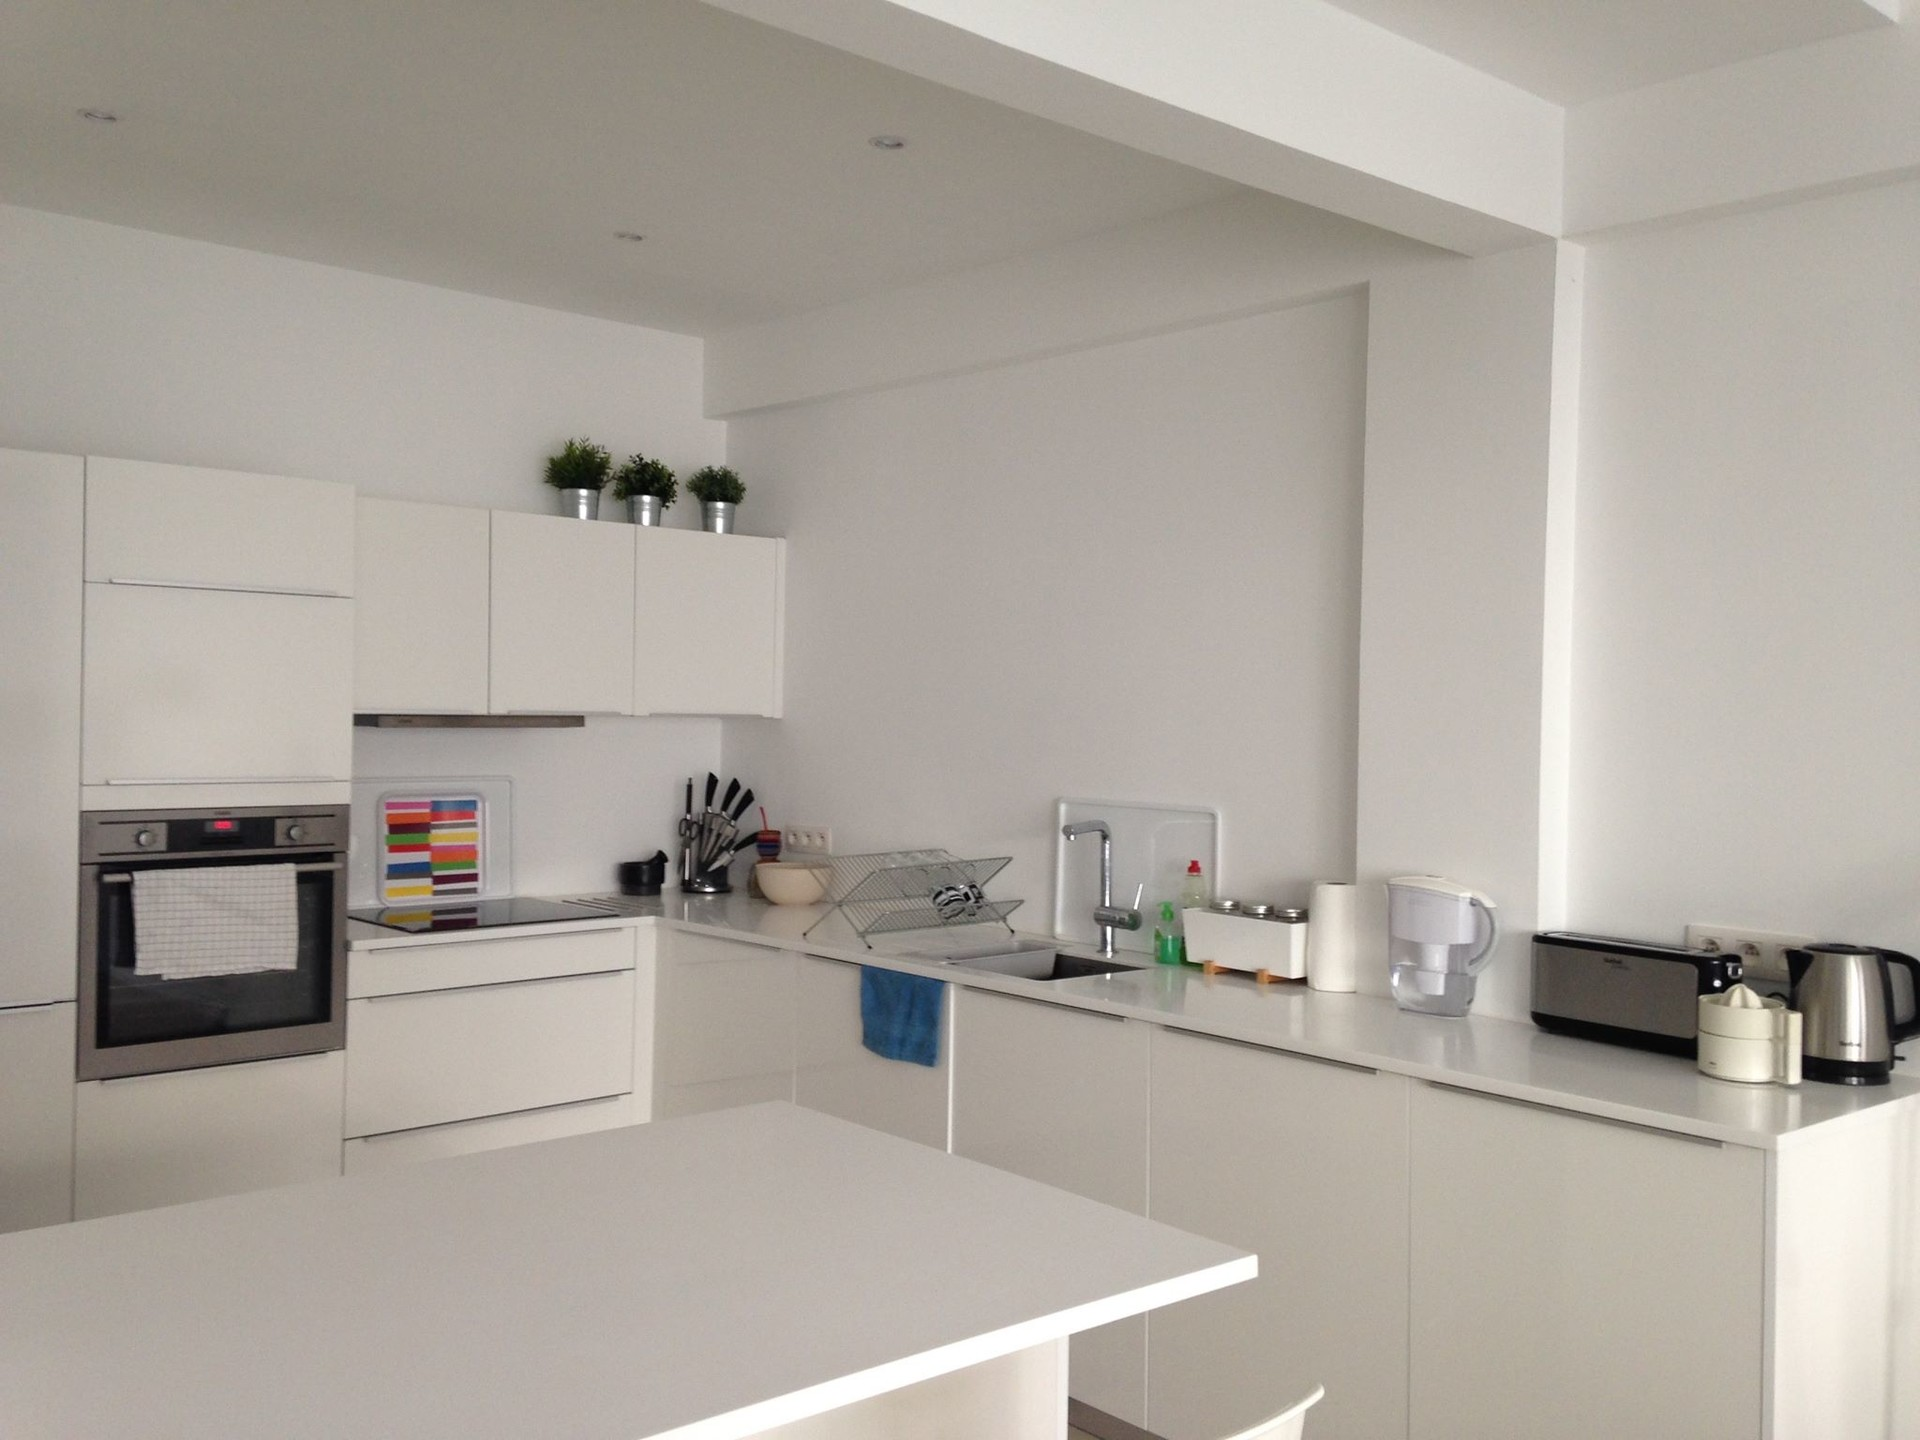 IXELLES : Room and private bathroom in a shared appartement (2 p.) /  Chambre et Sdb dans un appartement moderne en colocation